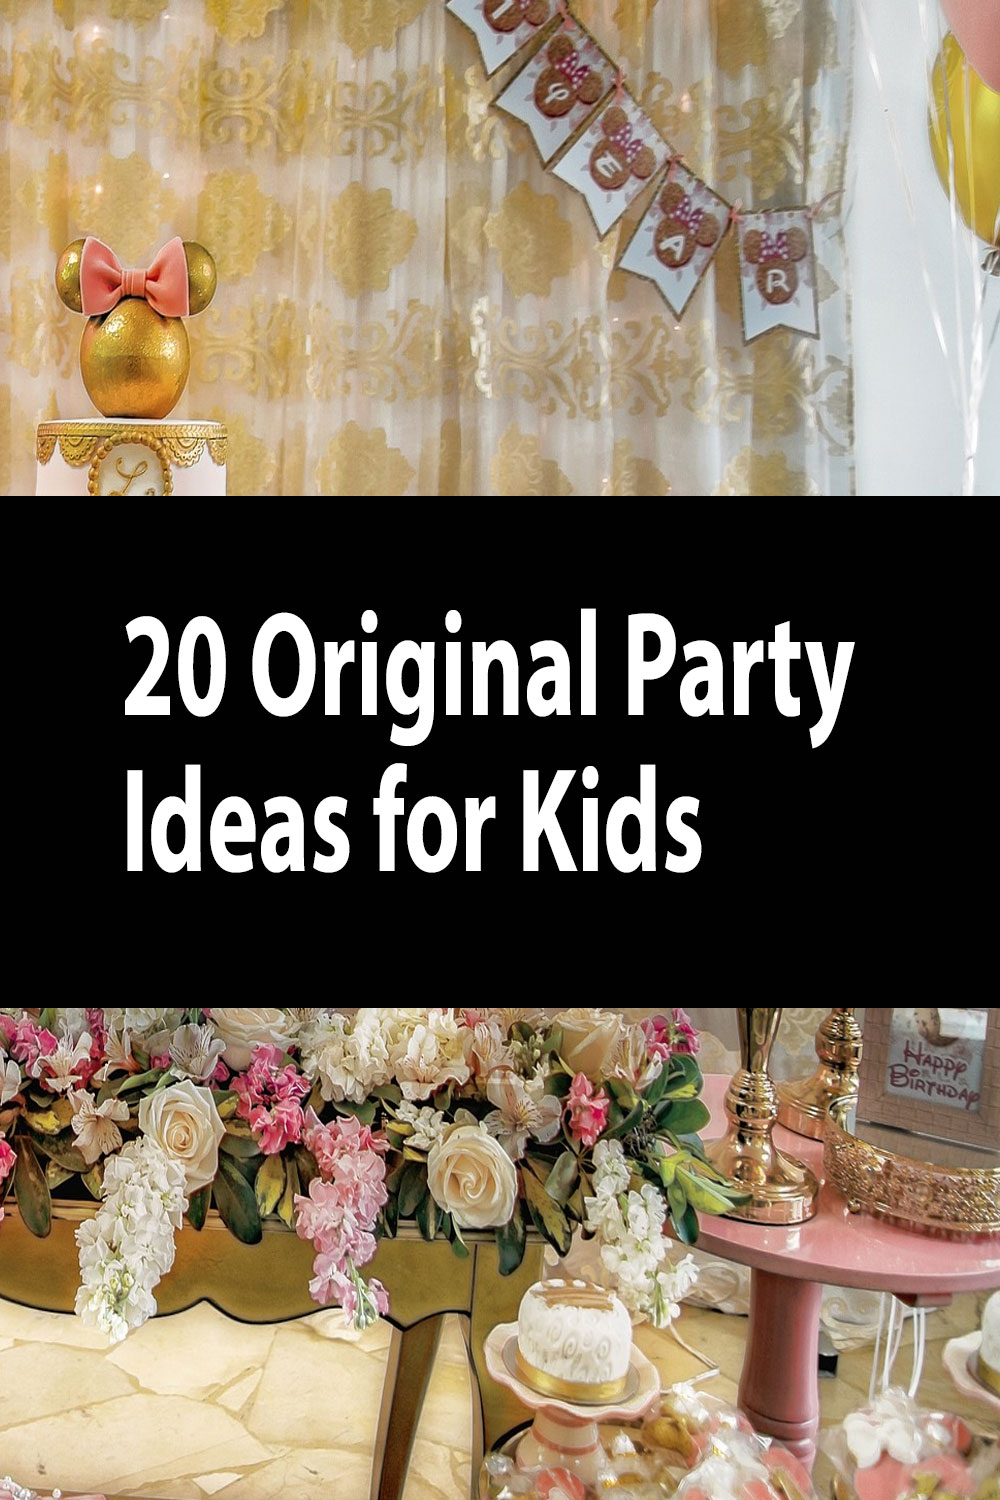 20 Original Party Ideas for Kids